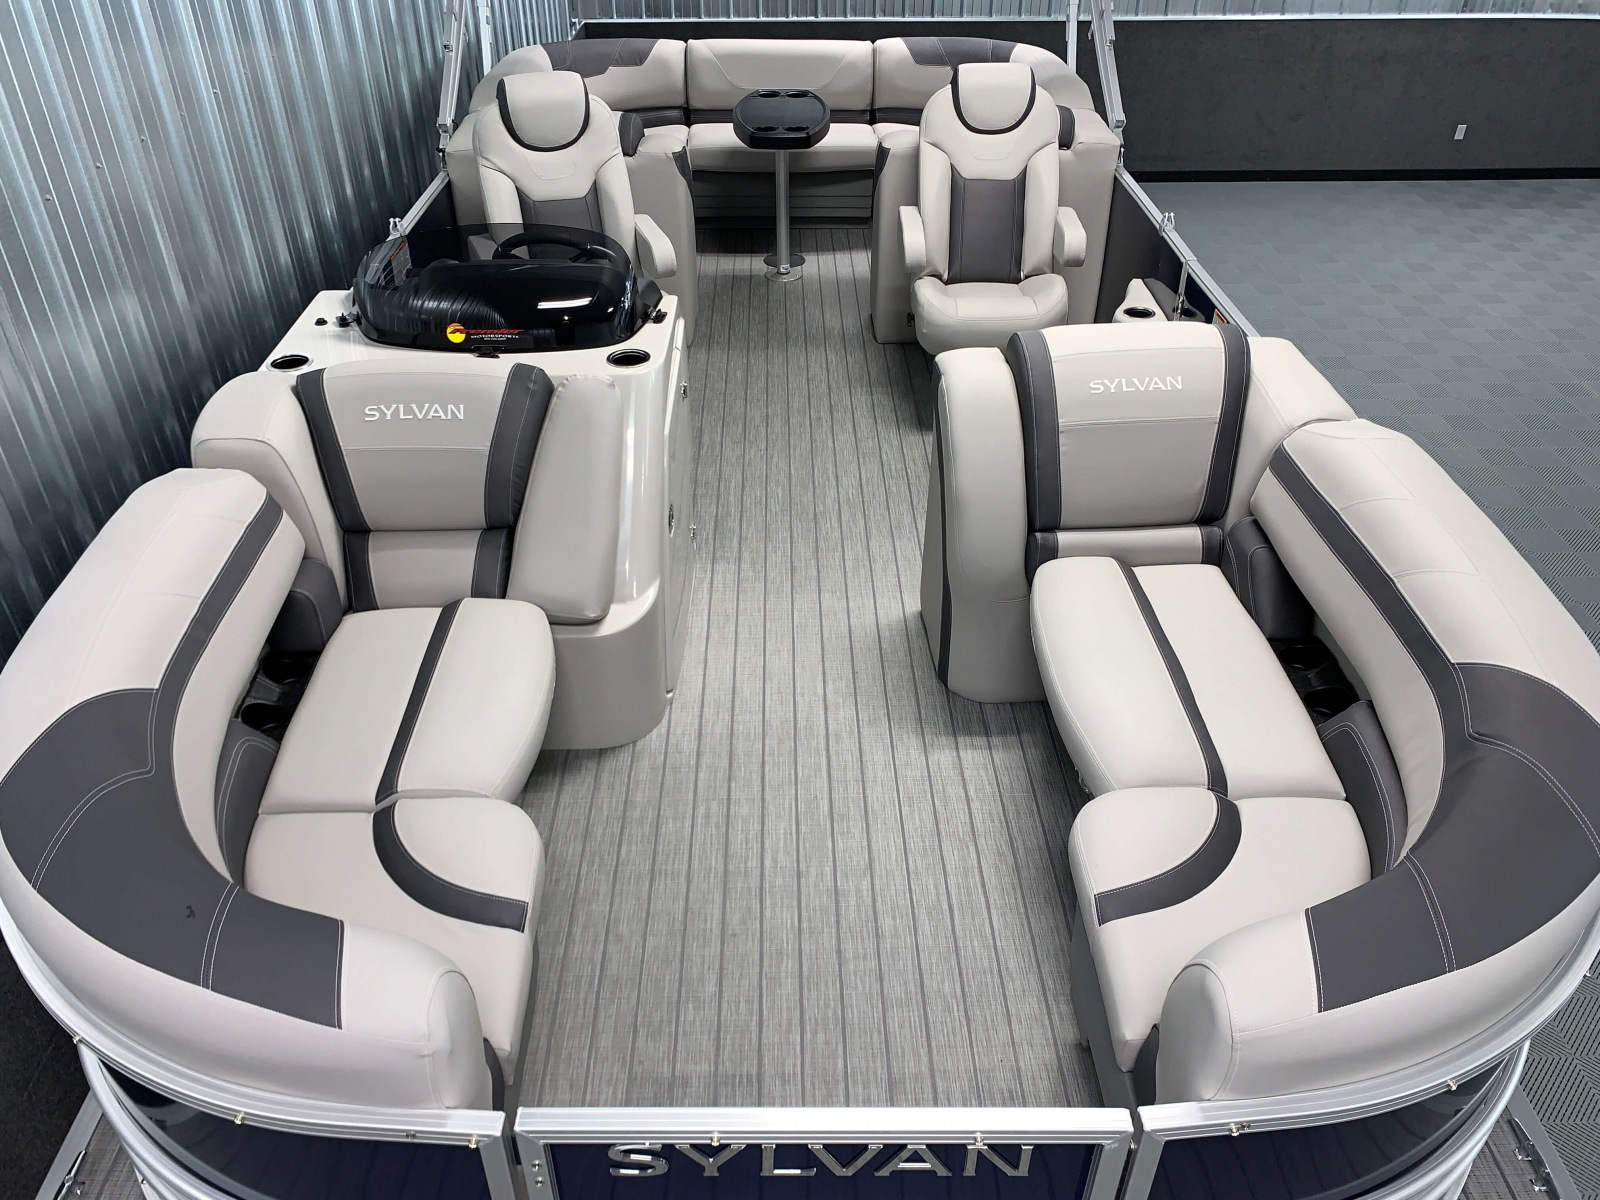 Interior Layout of the 2021 Sylvan L3 LZ Tritoon Boat